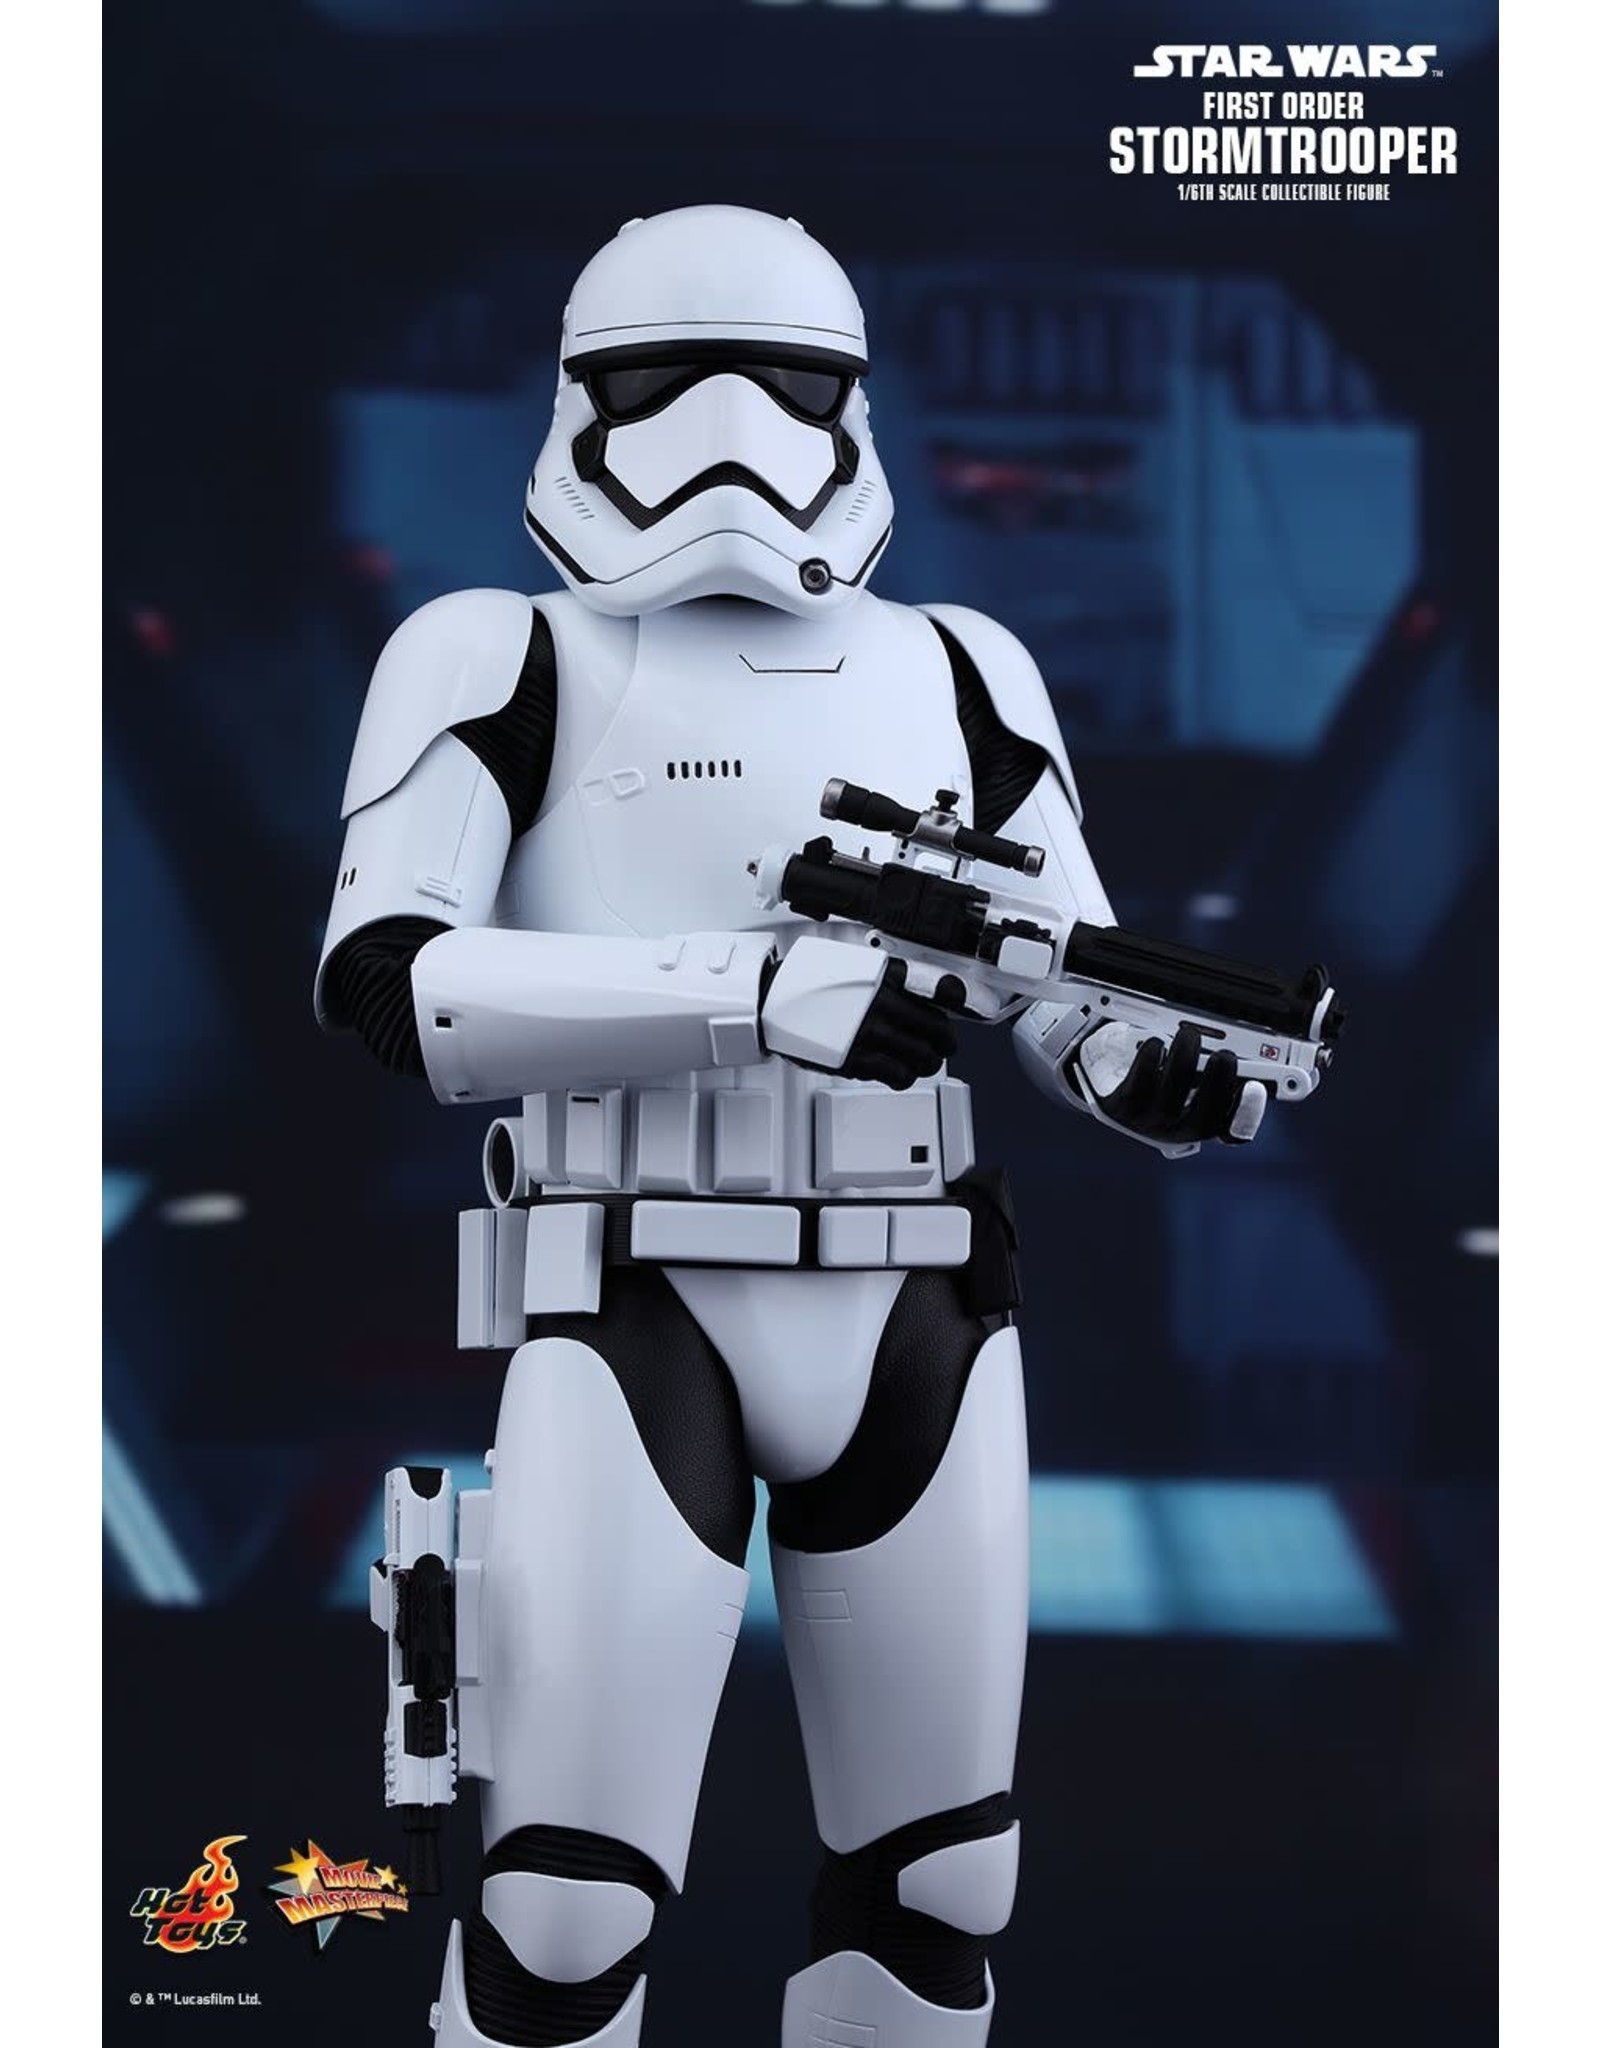 STAR WARS - Set of 2 First Order Stormtrooper 1:6 Scale Figure - PROMO